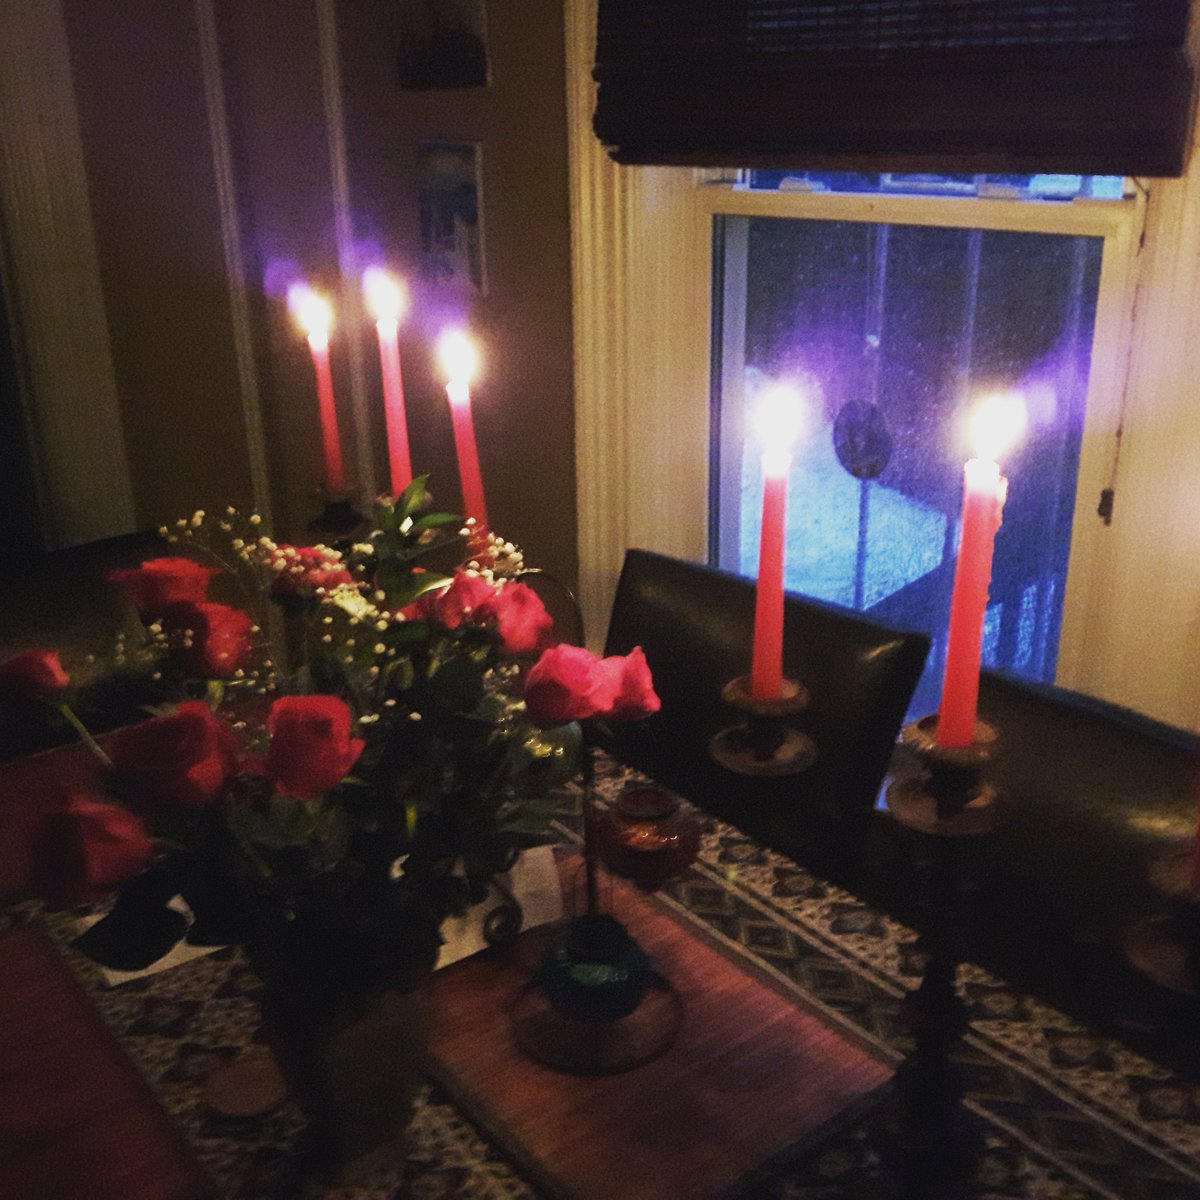 Power was out last night so we had candles lit. Had to get a photo.  #Halifax #poweroutage #candles #photo #fridaymotivation